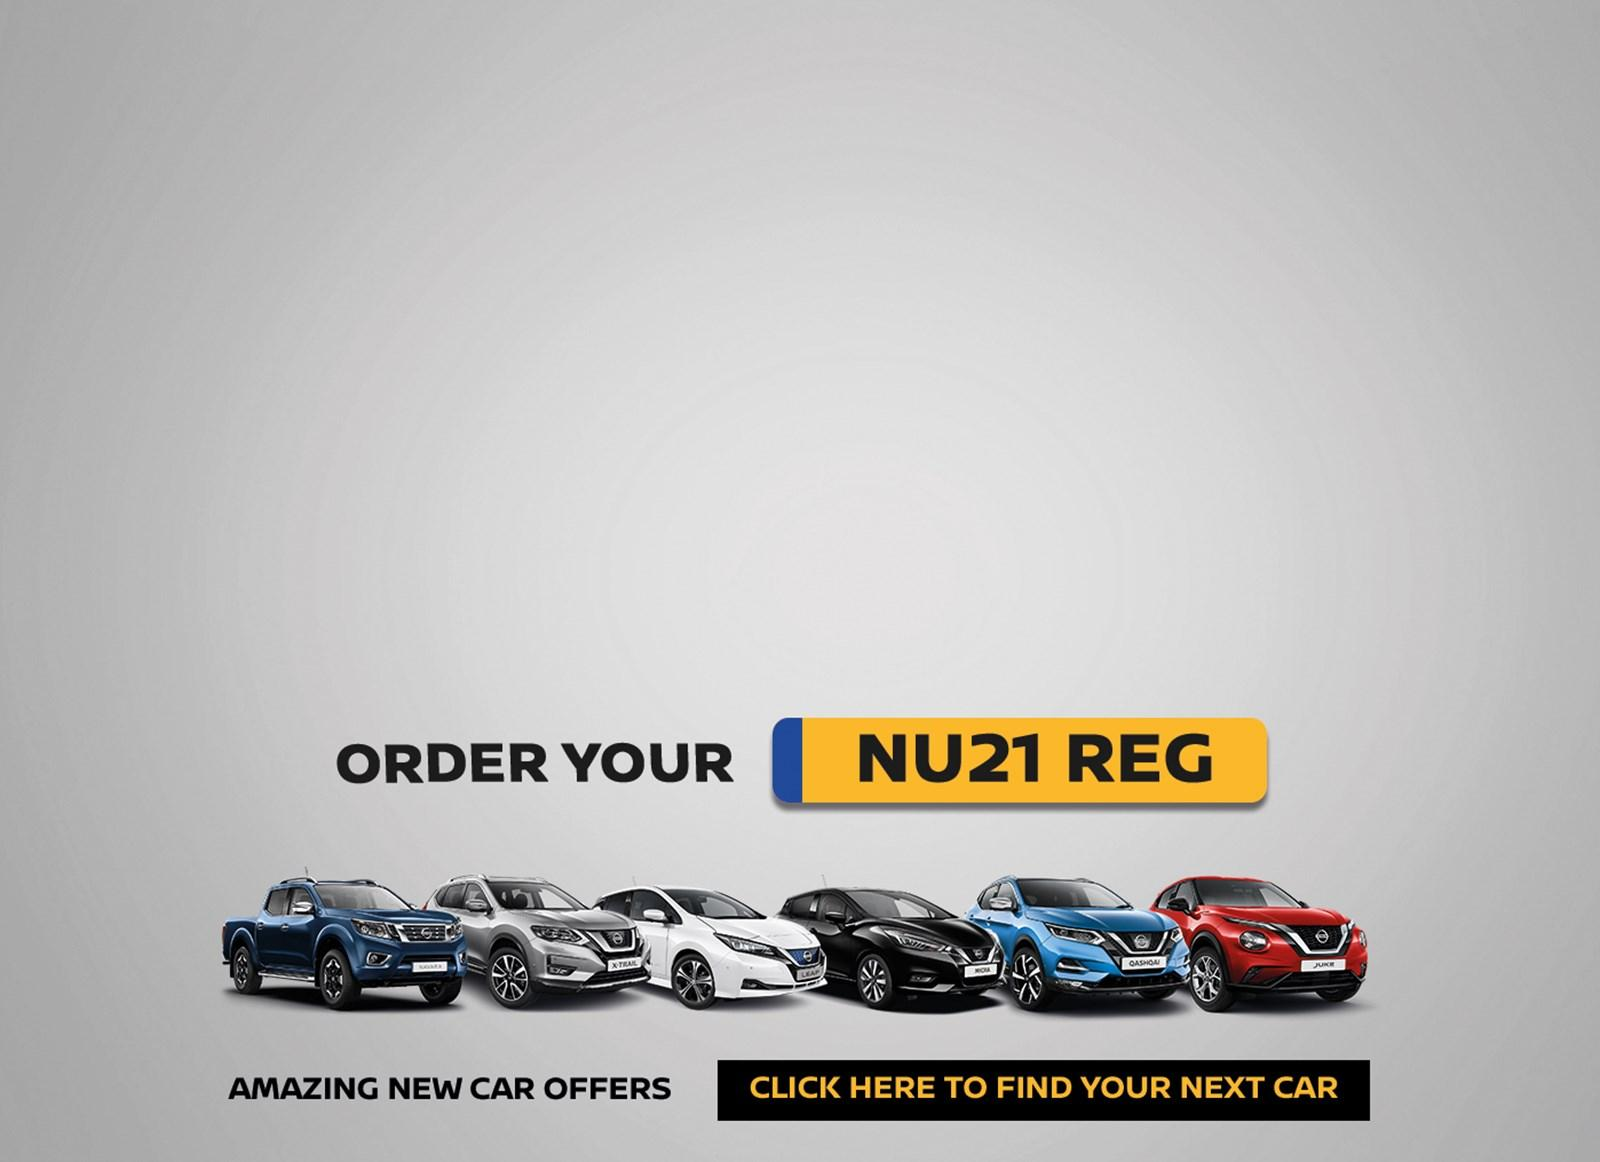 Order Your New 21 Reg at Ancaster Nissan